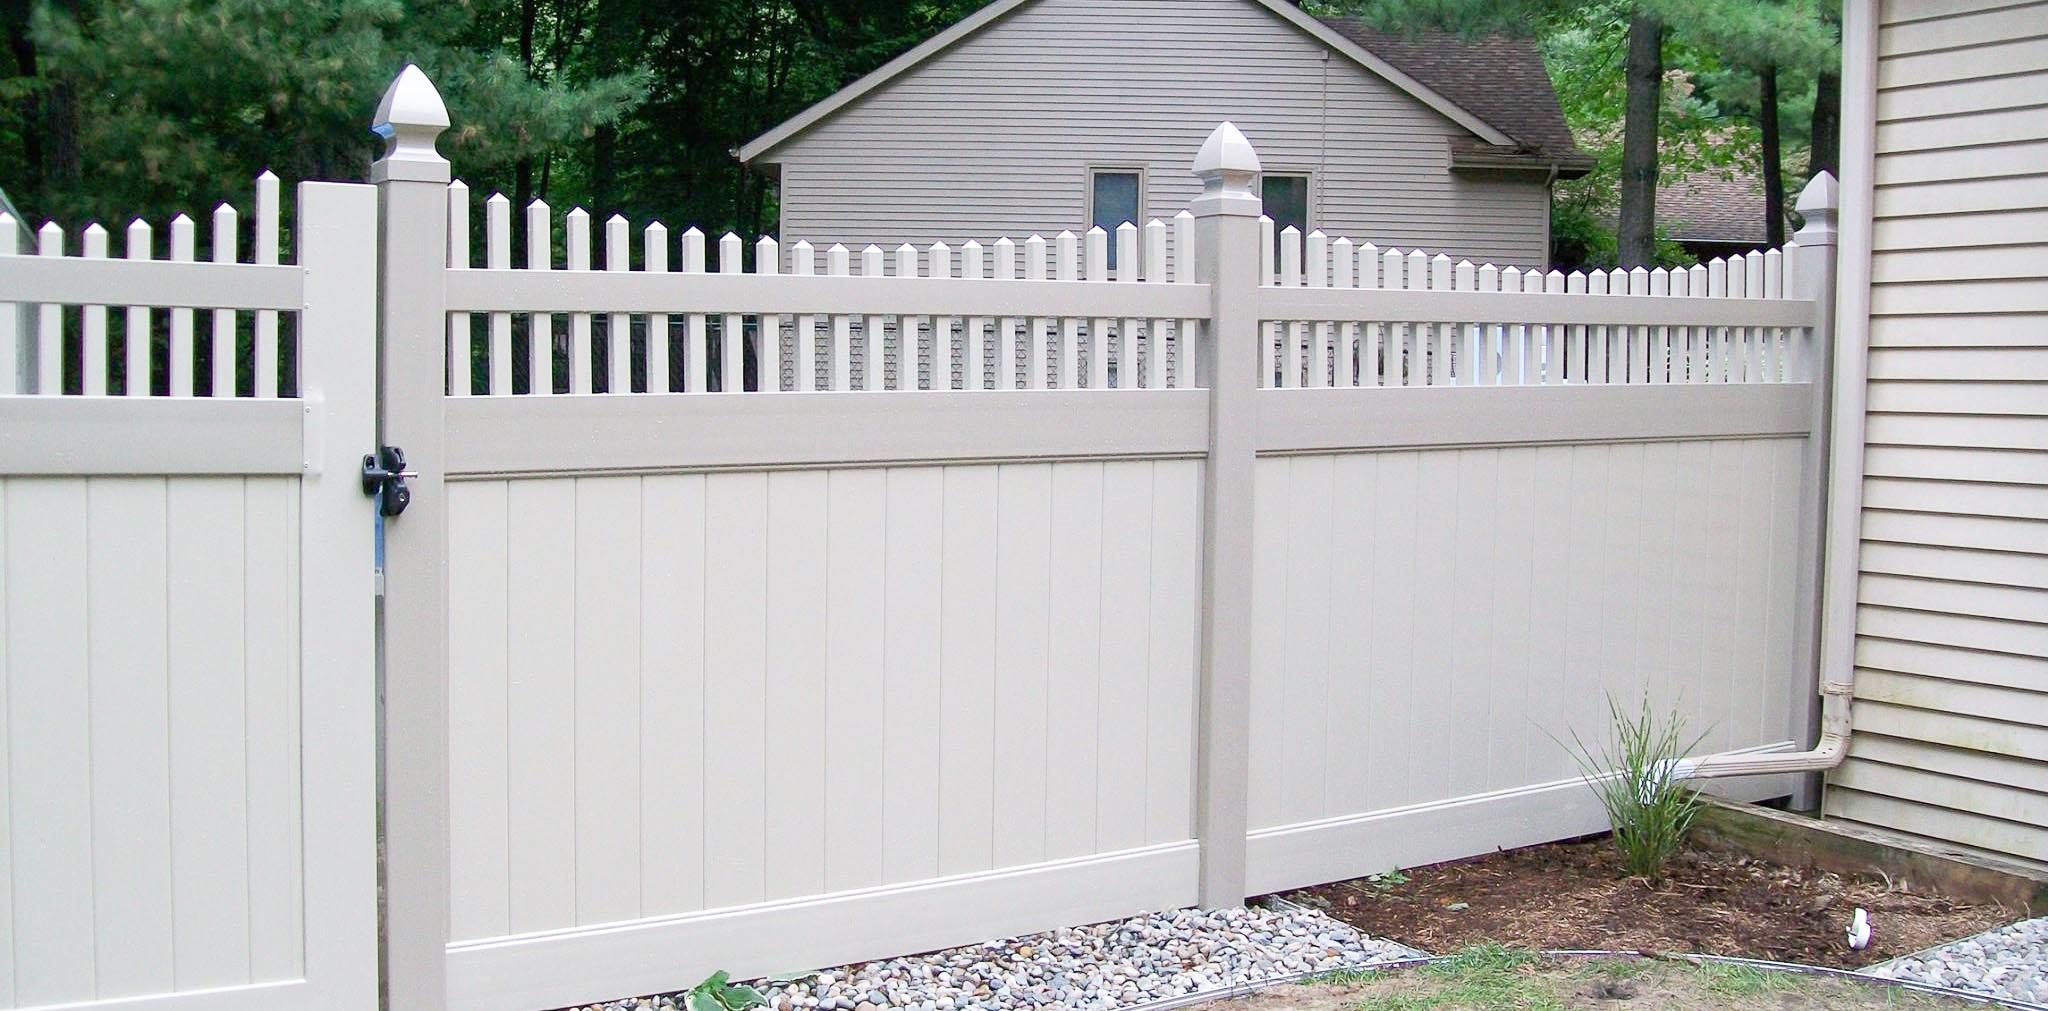 Fence | Fencing types | Grand Rapids